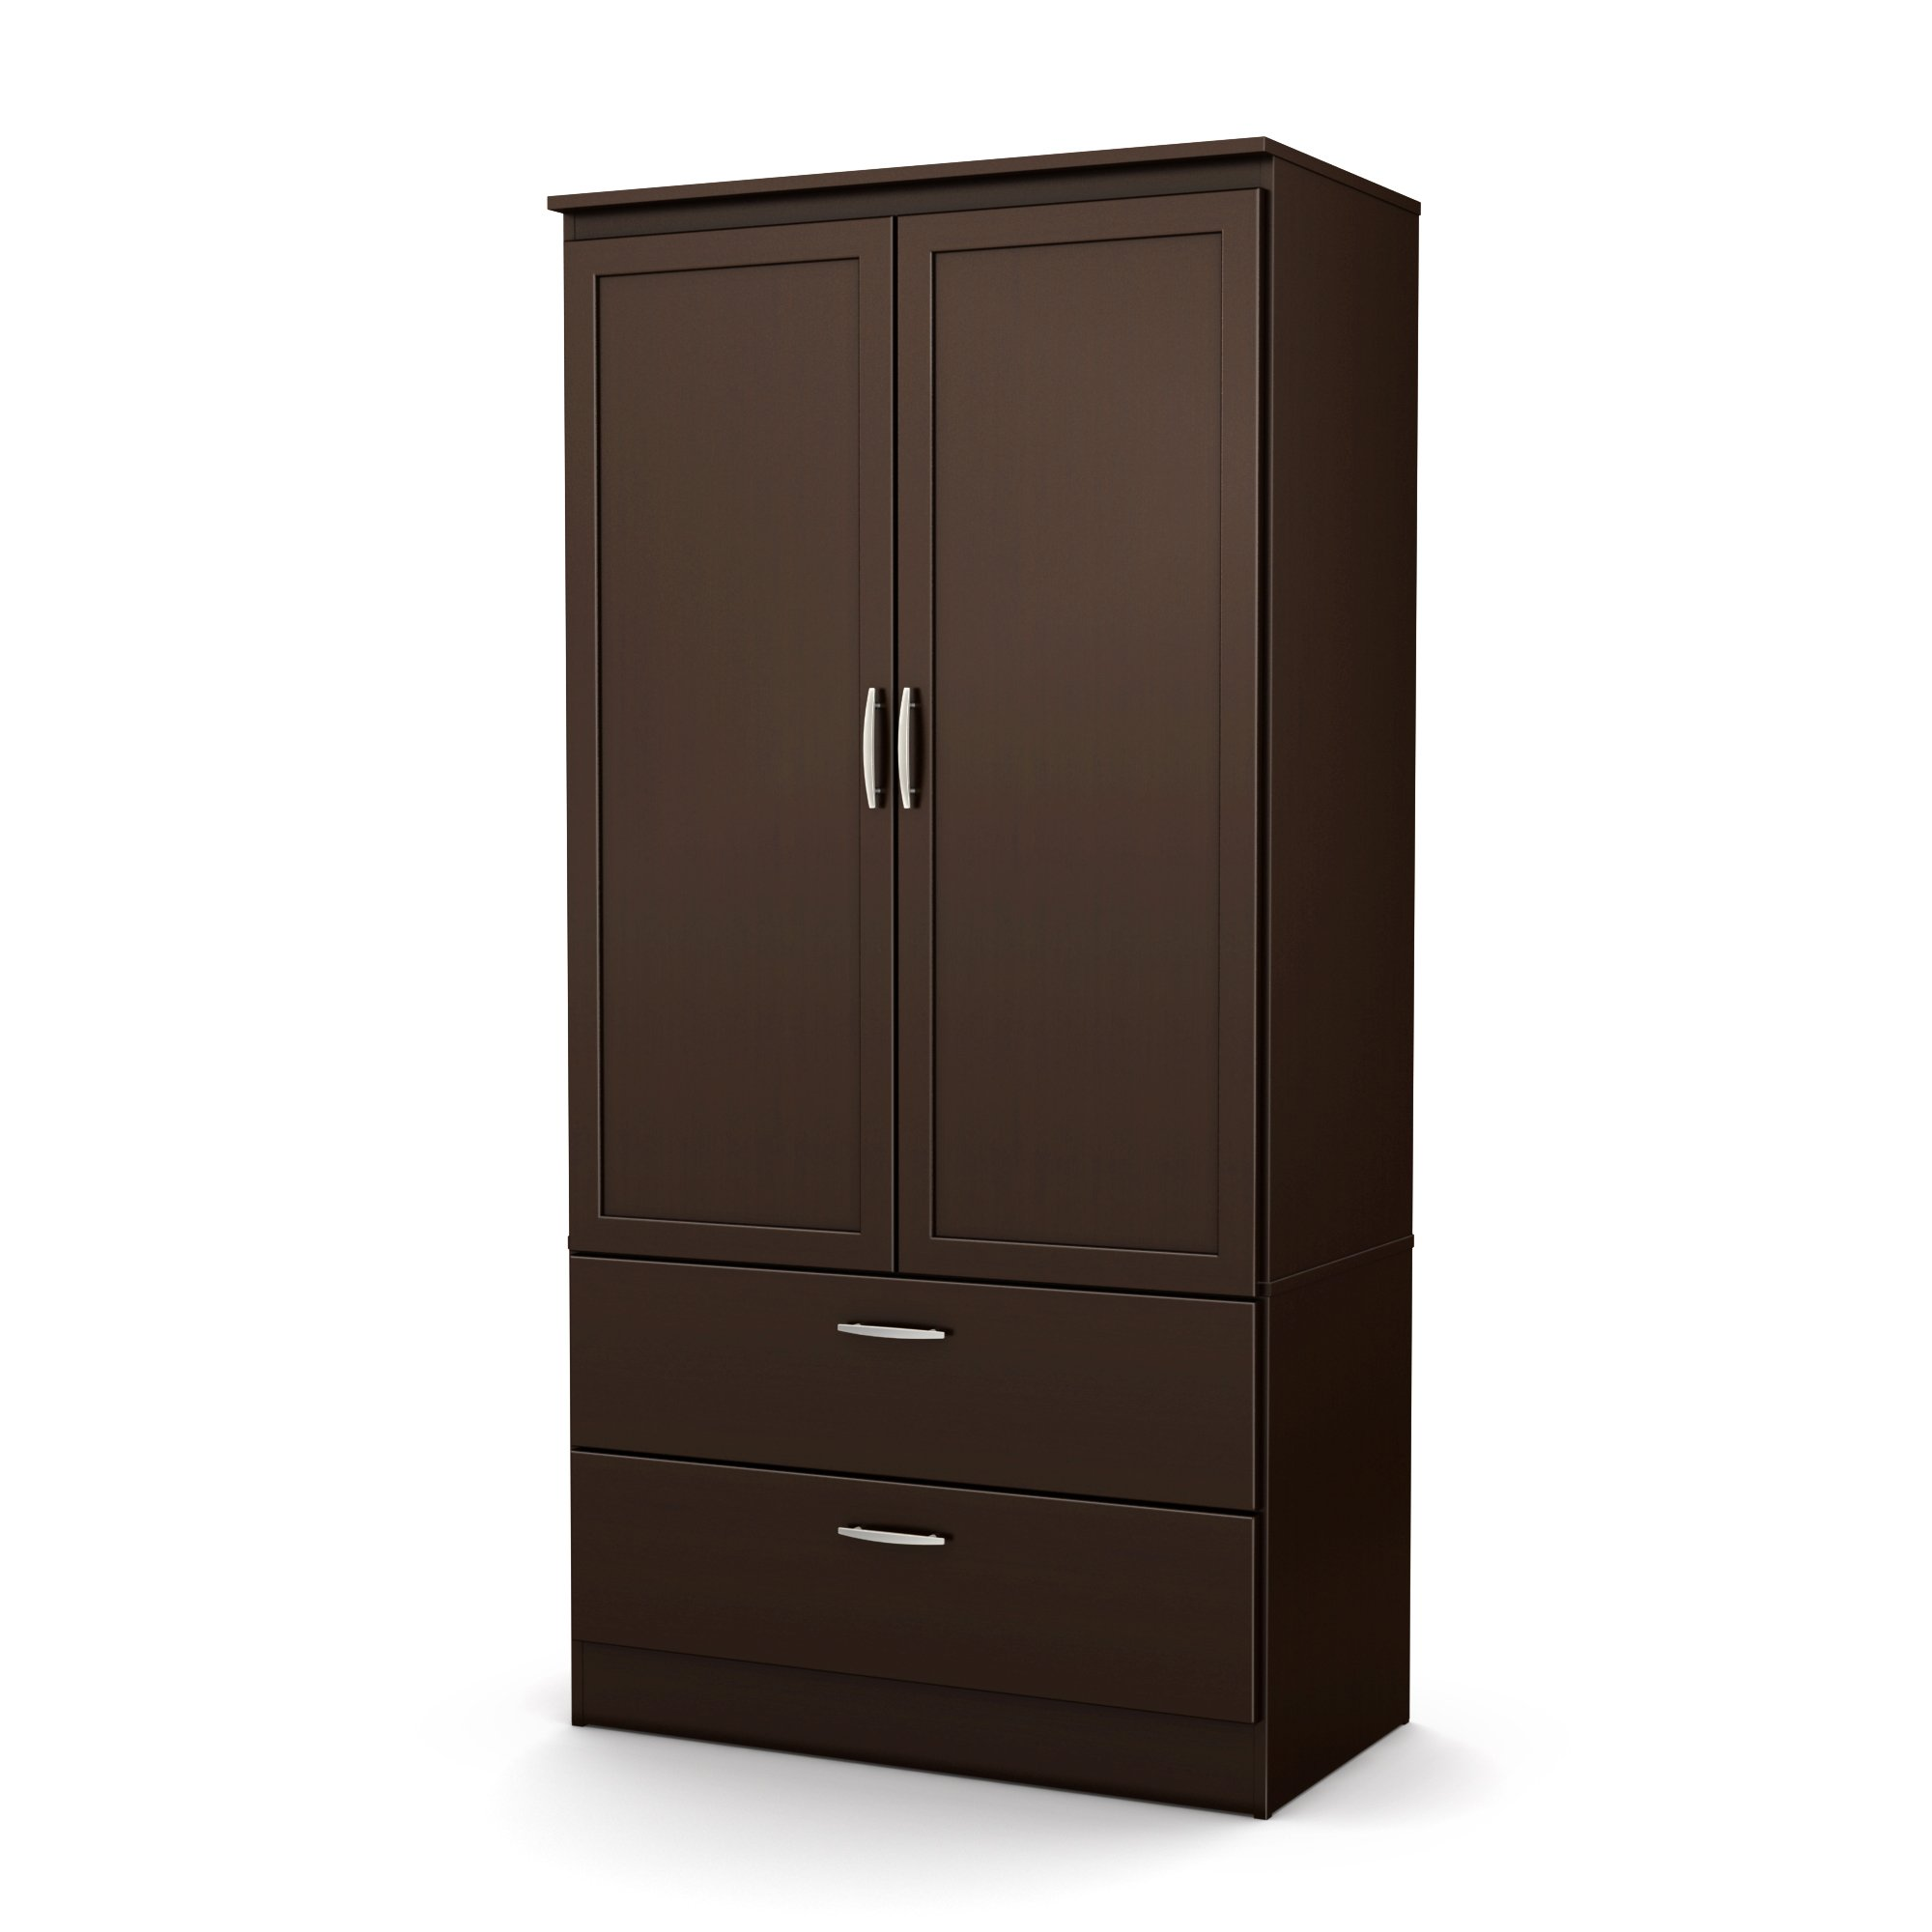 South Shore 5359038 2-Door Wardrobe Armoire with Adjustable Shelves and Storage Drawers, Chocolate